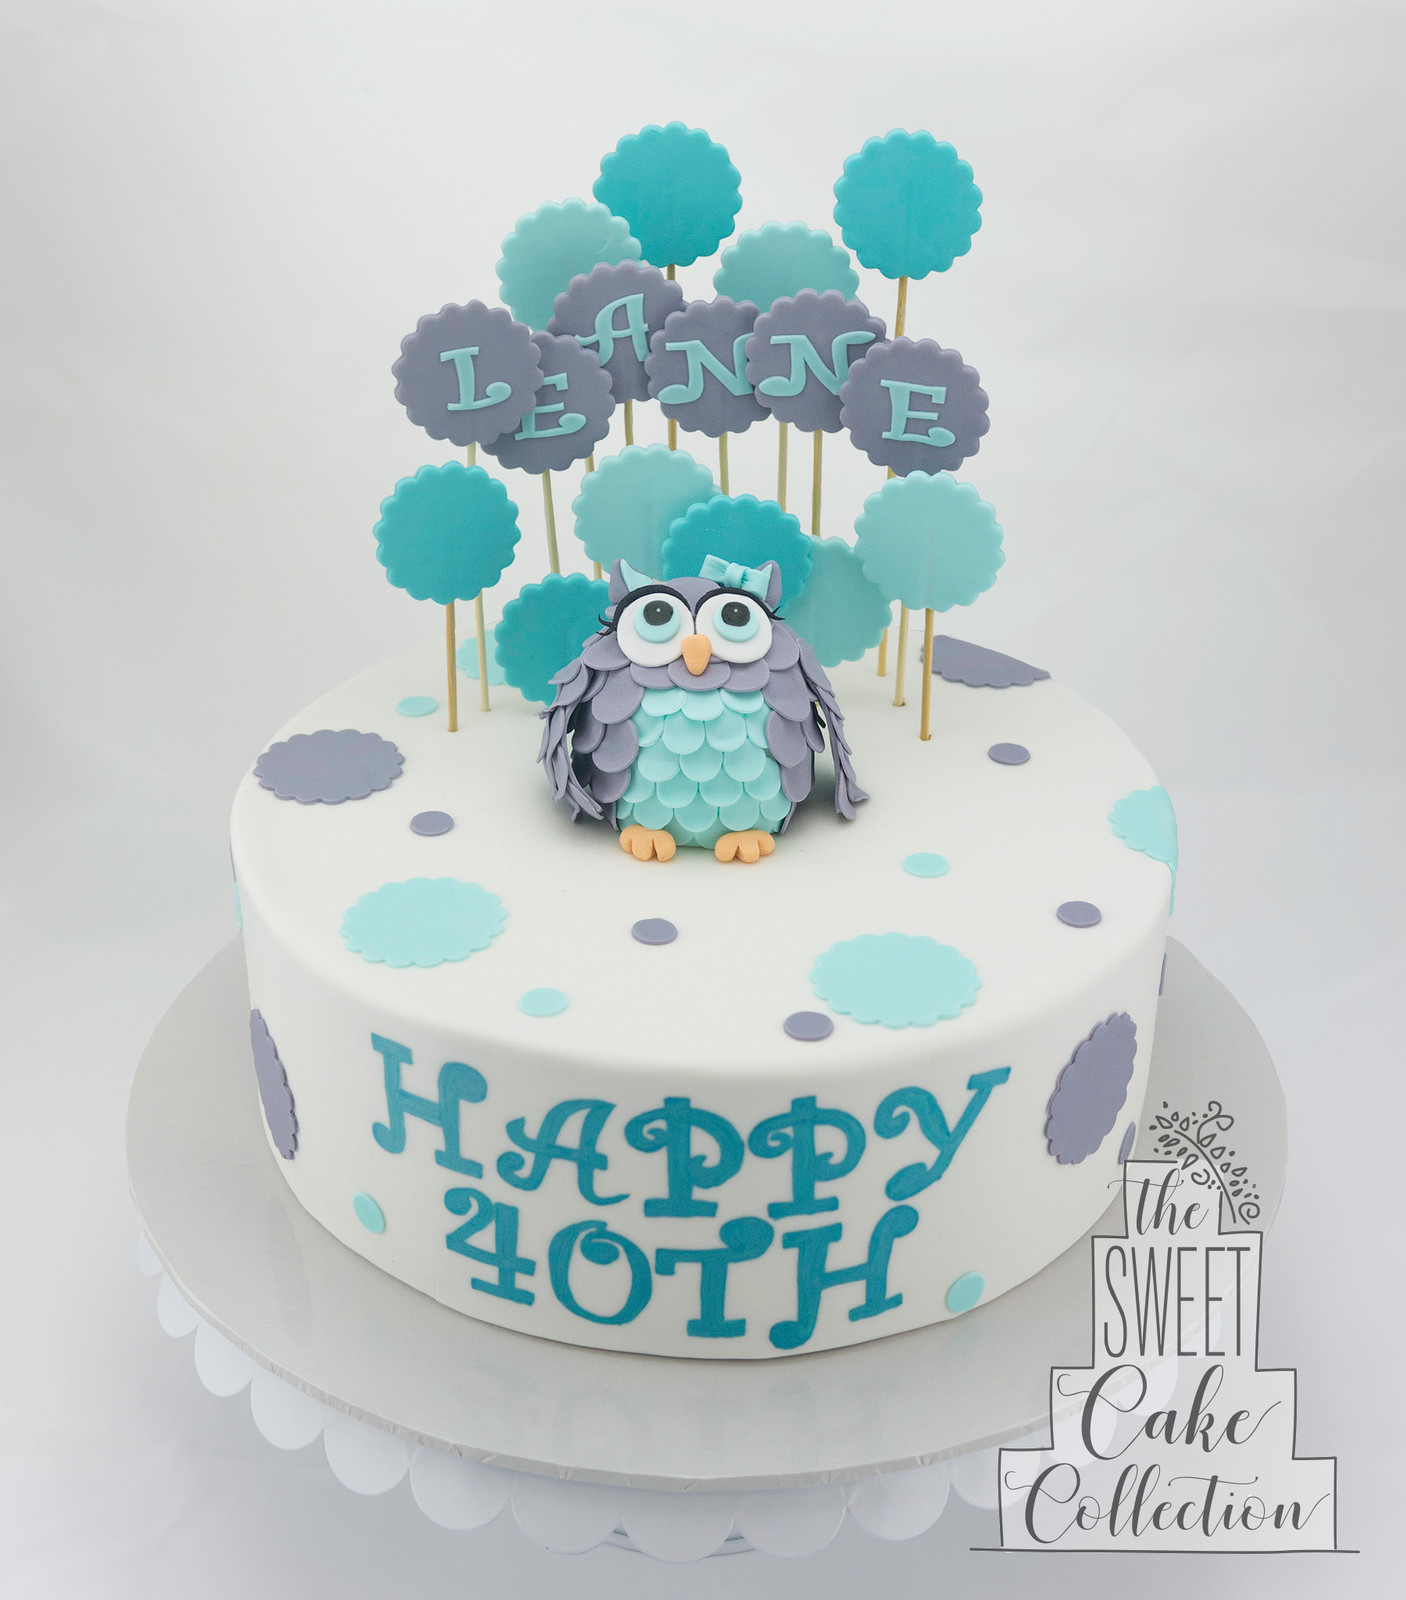 Owl Cake The Sweet Cake Collection Wedding Engagement Cakes in